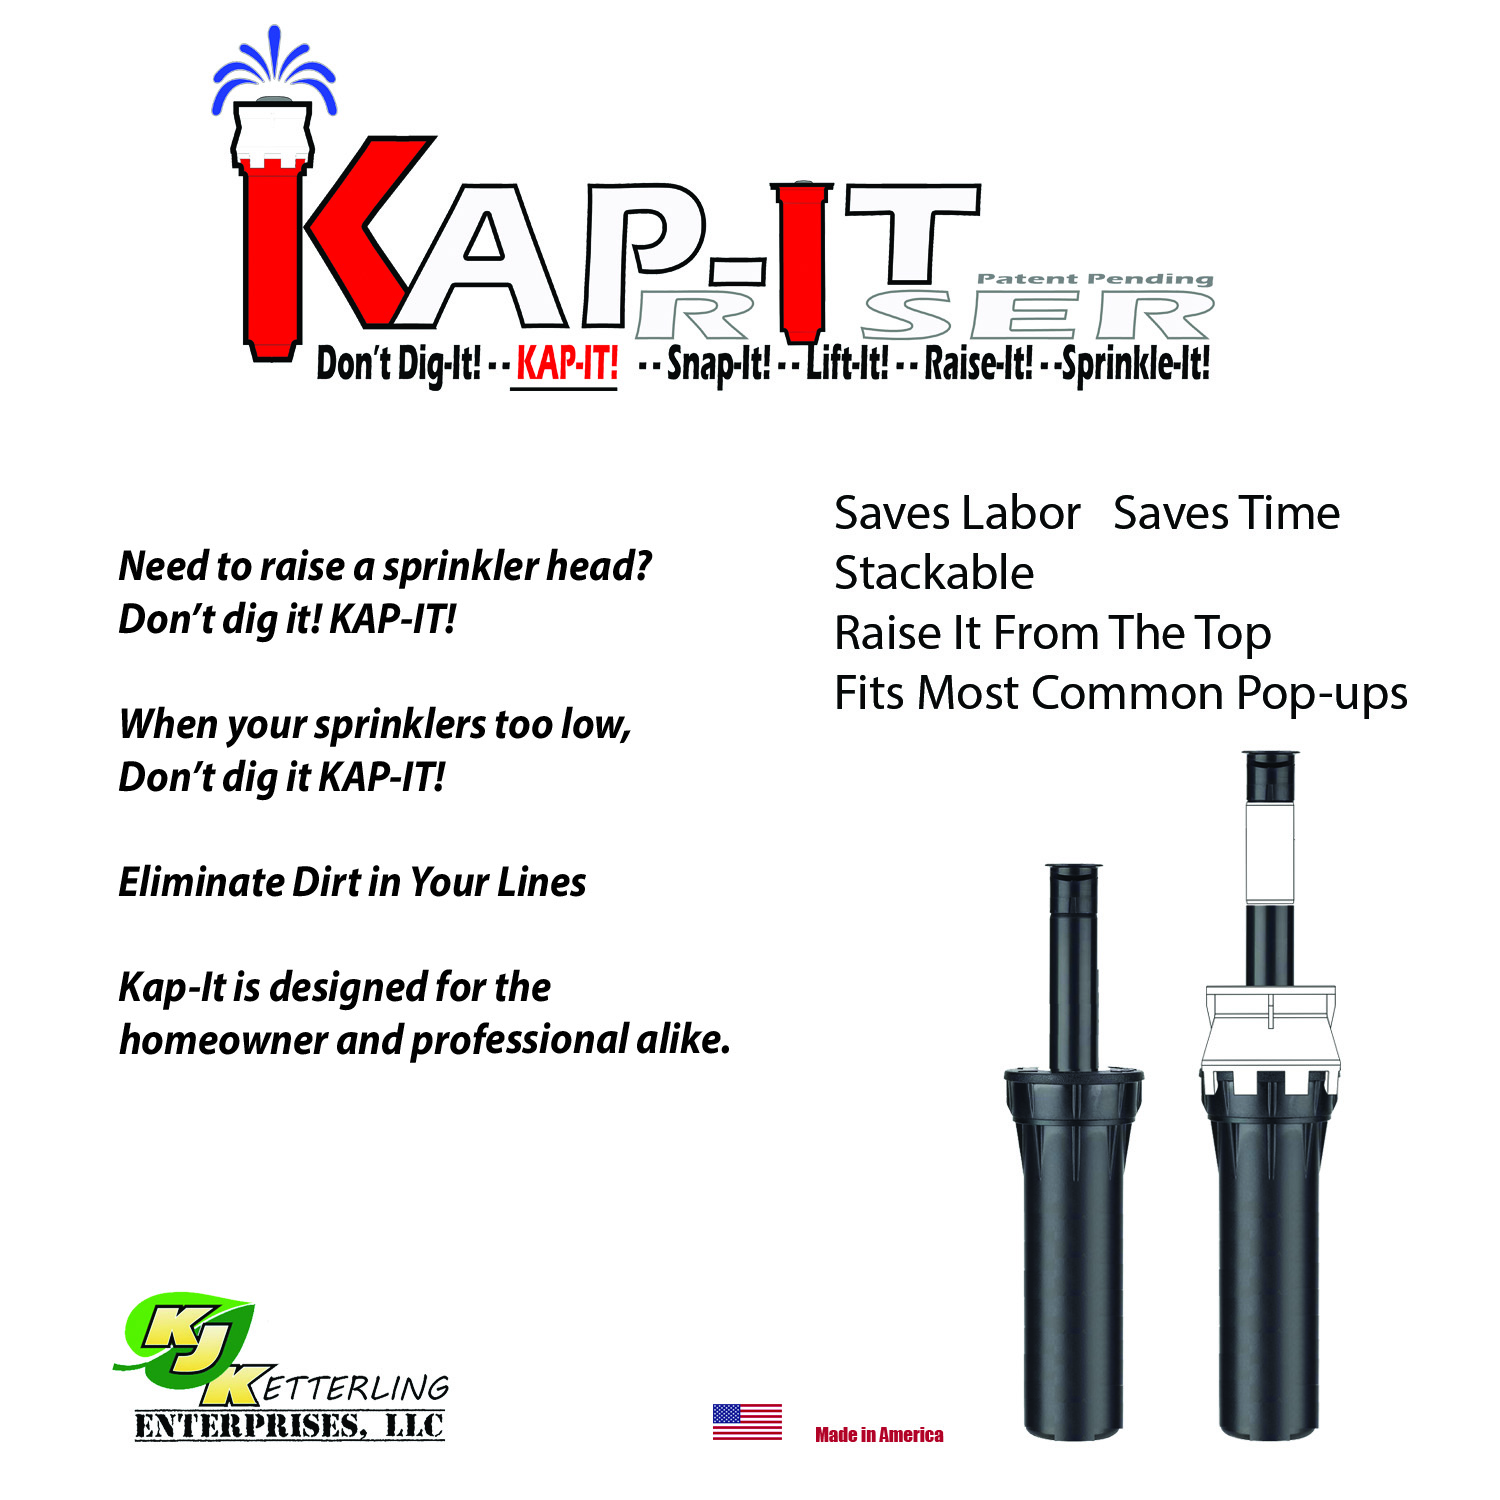 Kap-it-info | Twin Falls ID Klok It, Locking Devices and